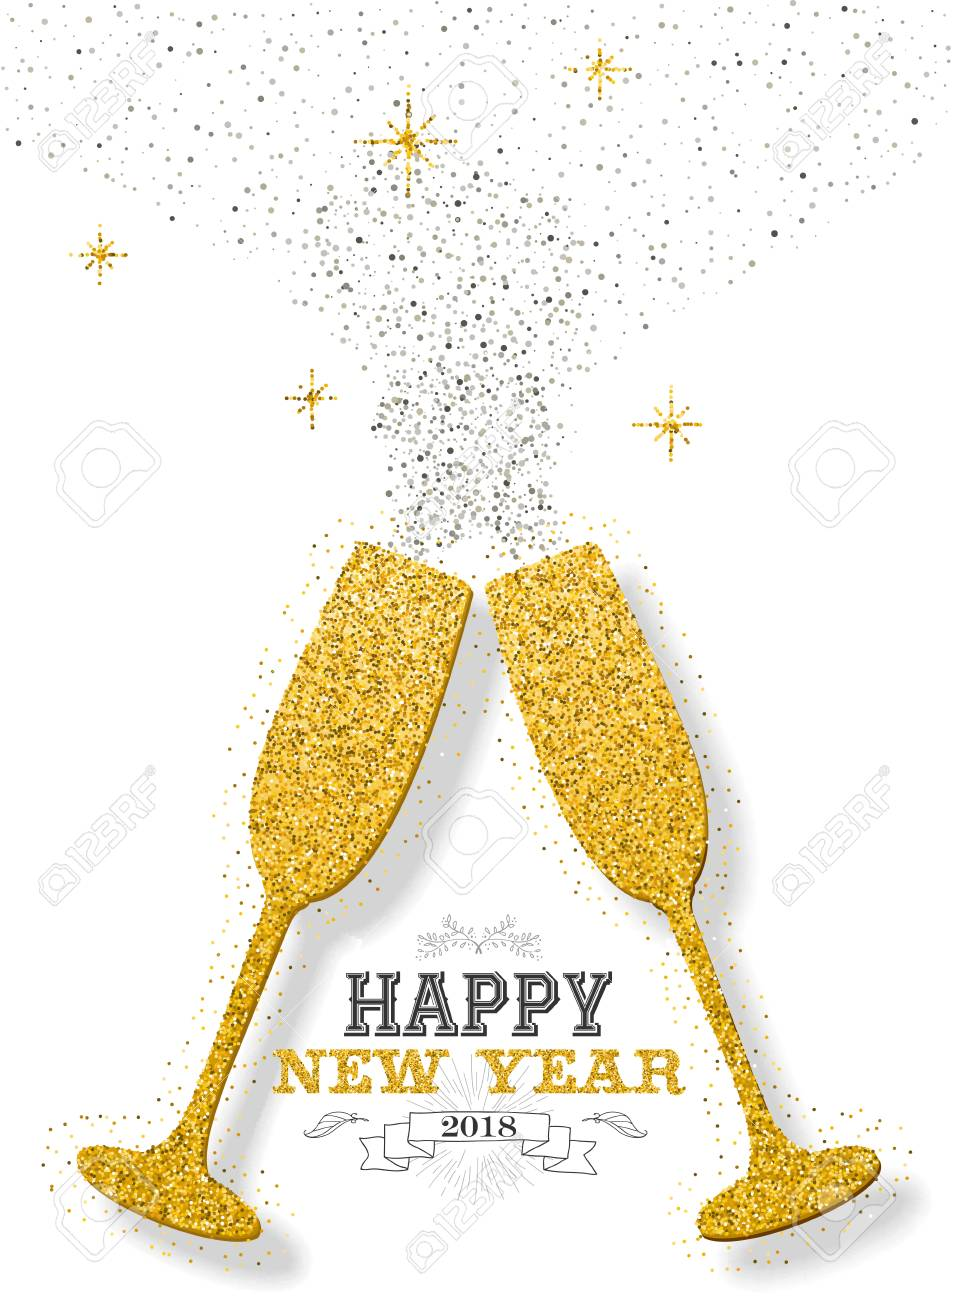 happy new year 2018 luxury gold celebration toast made of golden glitter dust ideal for